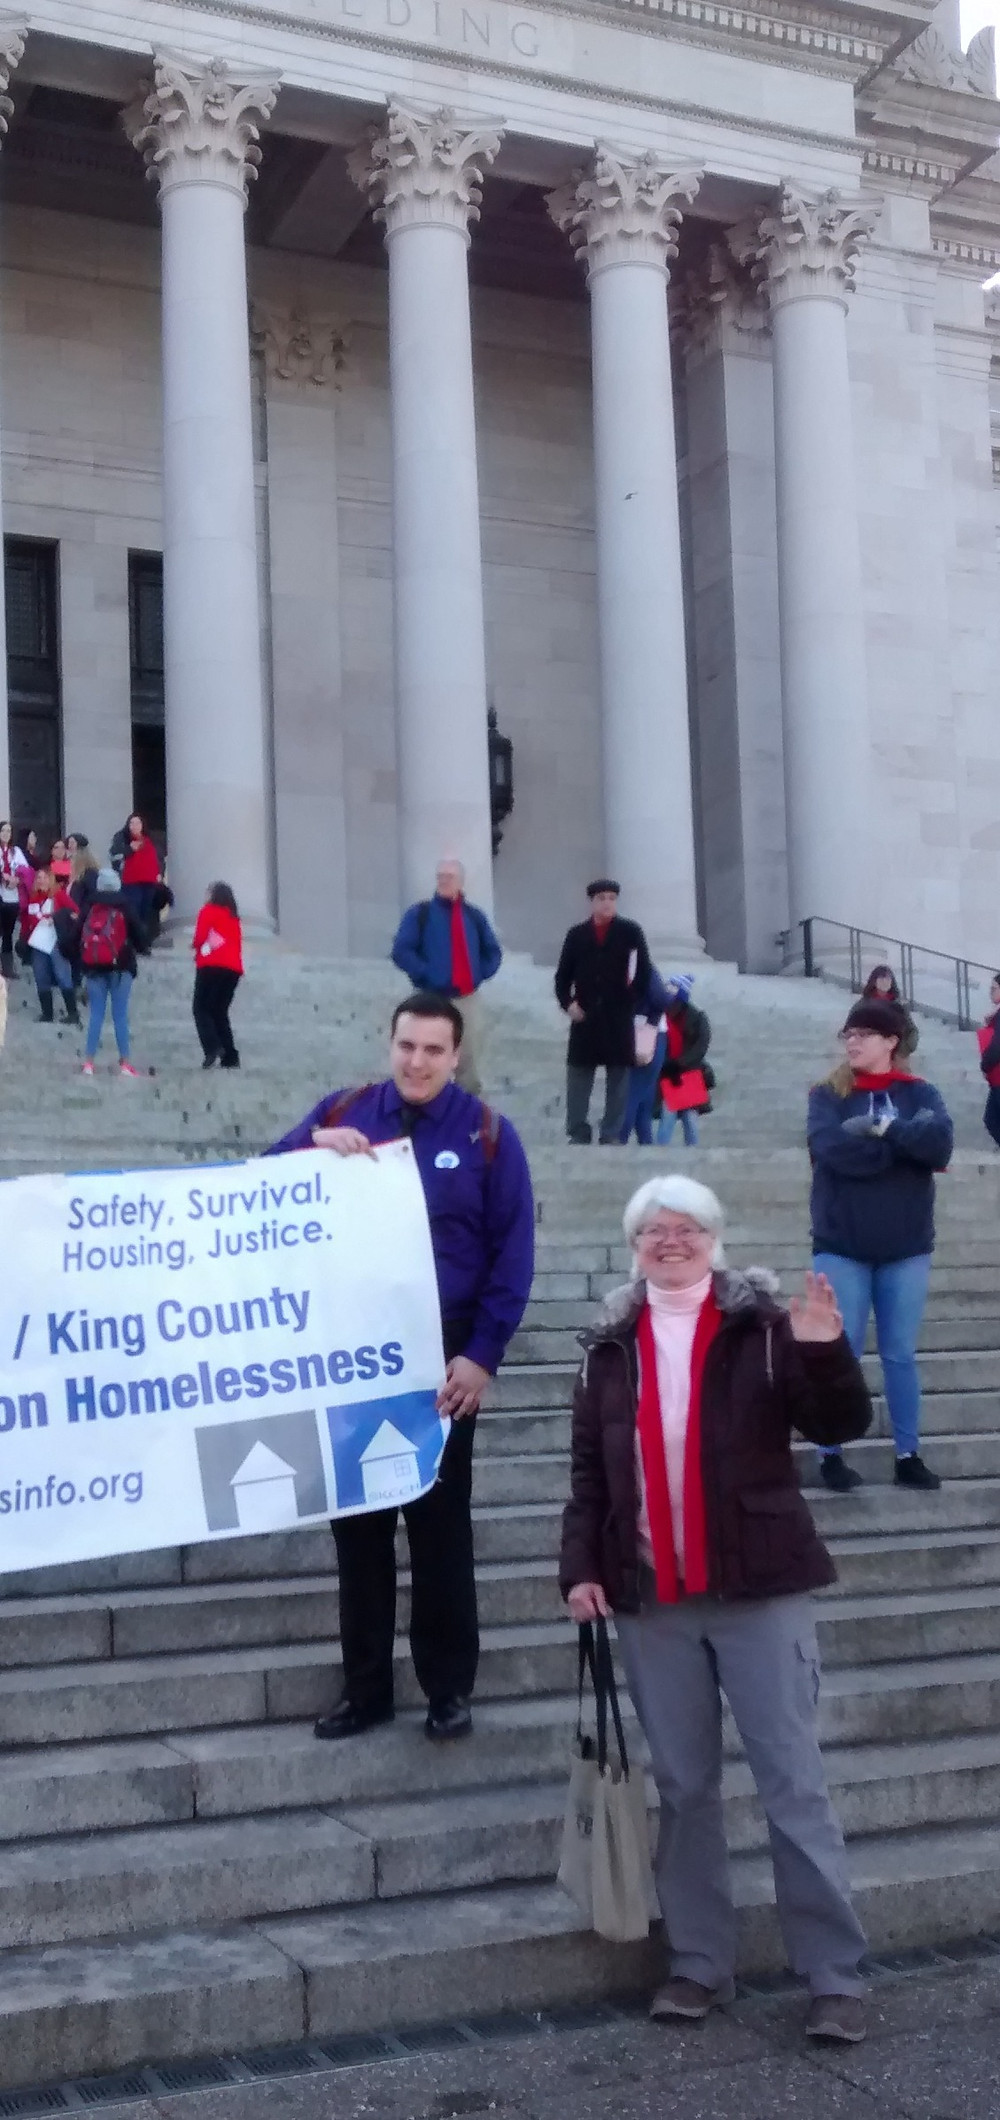 Catherine, wearing a red scarf, stands in front of Washington State's Capitol Building. She is waving and smiling.